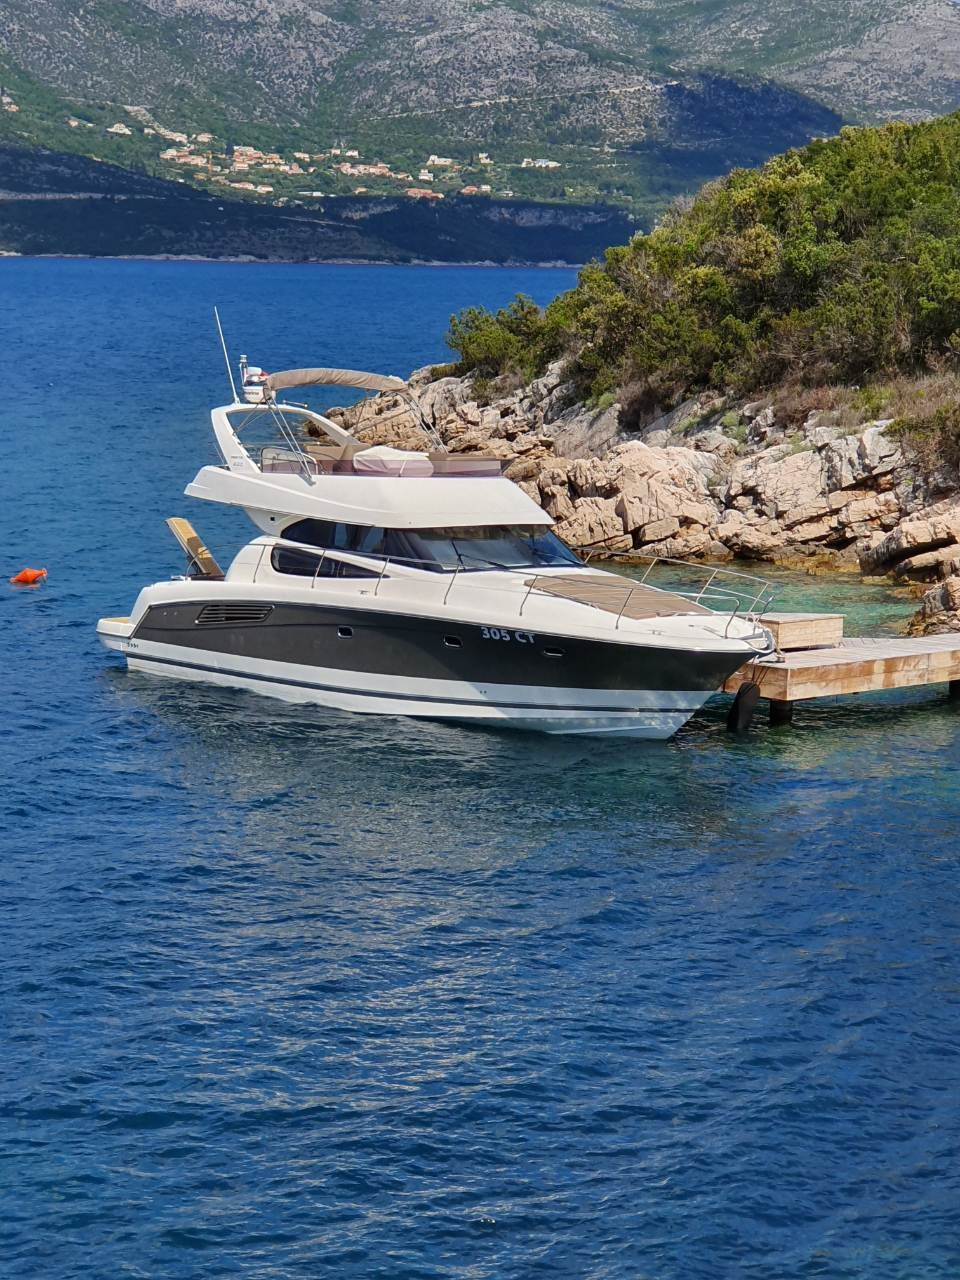 Jeanneau Prestige 440 Fly dubrovnik yachting relax daily experience coast